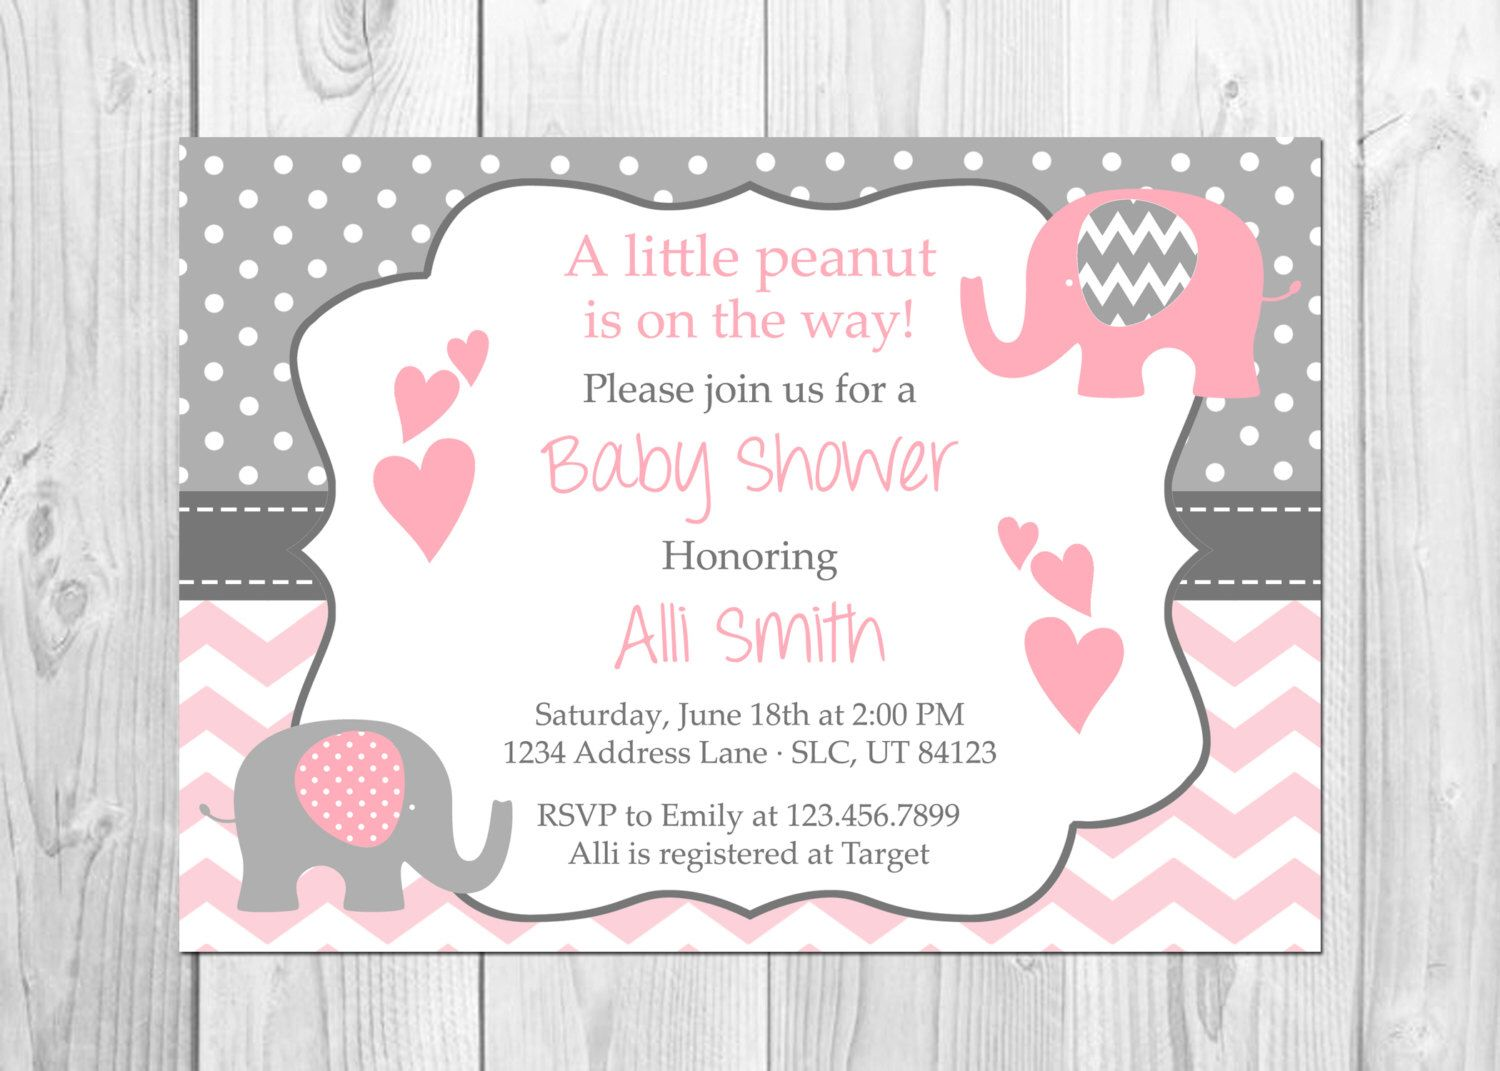 Full Size of Baby Shower:inspirational Elephant Baby Shower Invitations Photo Concepts Elephant Baby Shower Invitations Baby Shower Table Ideas Baby Shower Templates Baby Shower Messages Baby Shower Party Favors Pink And Grey Elephant Baby Shower Invitation Its A Elephant Chevron Pink Little Peanut Baby Shower Invitation Baby Shower By